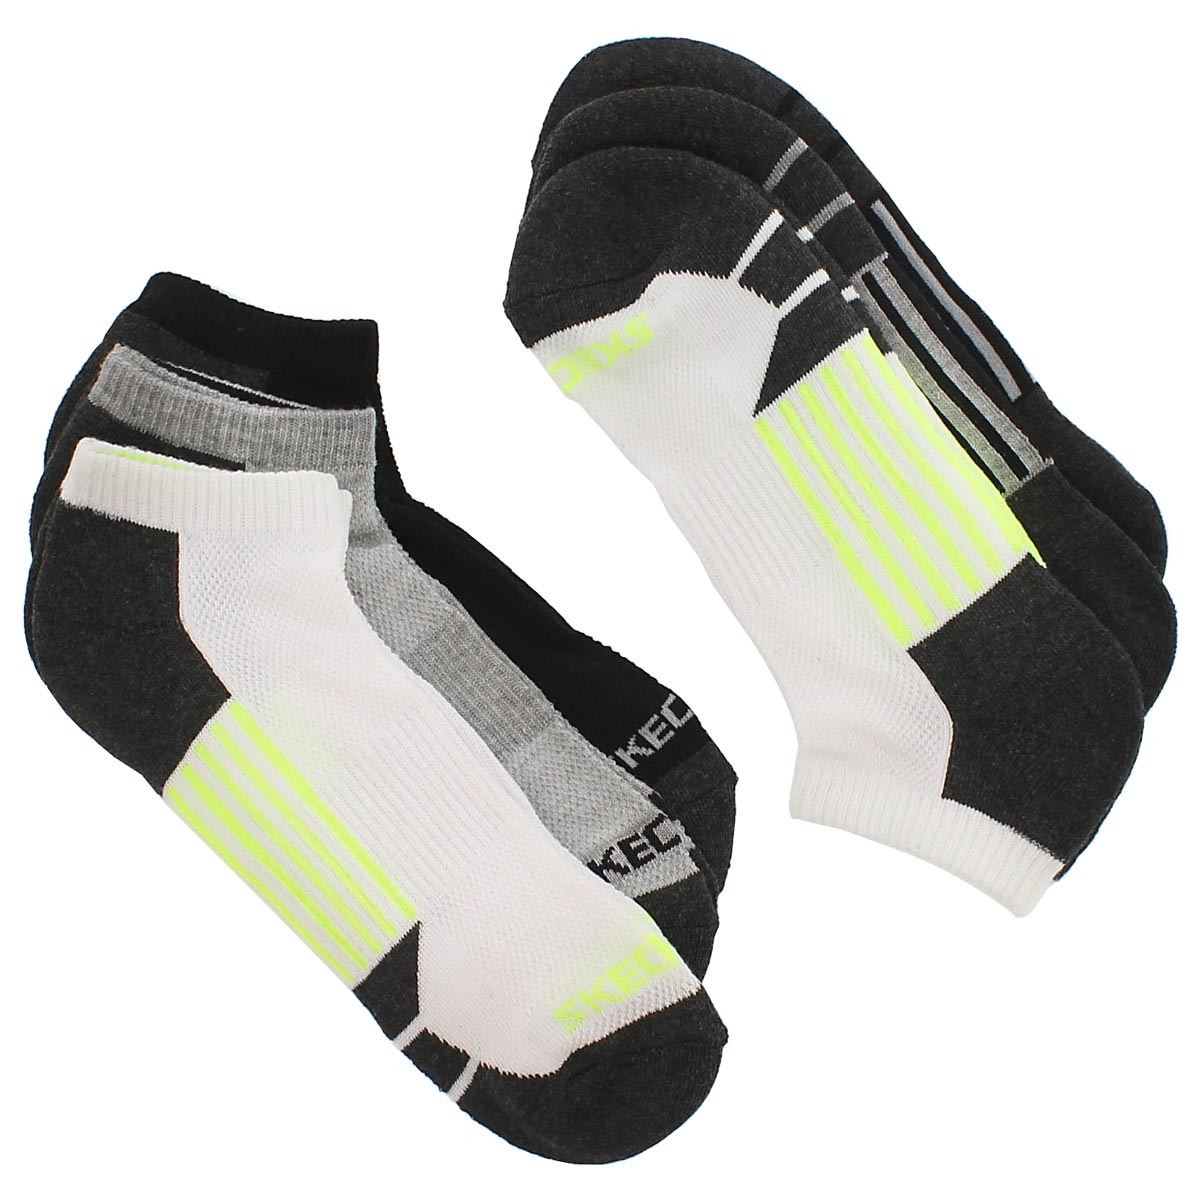 Men's 1/2 TERRY CREW white/yellow socks - 6 pk